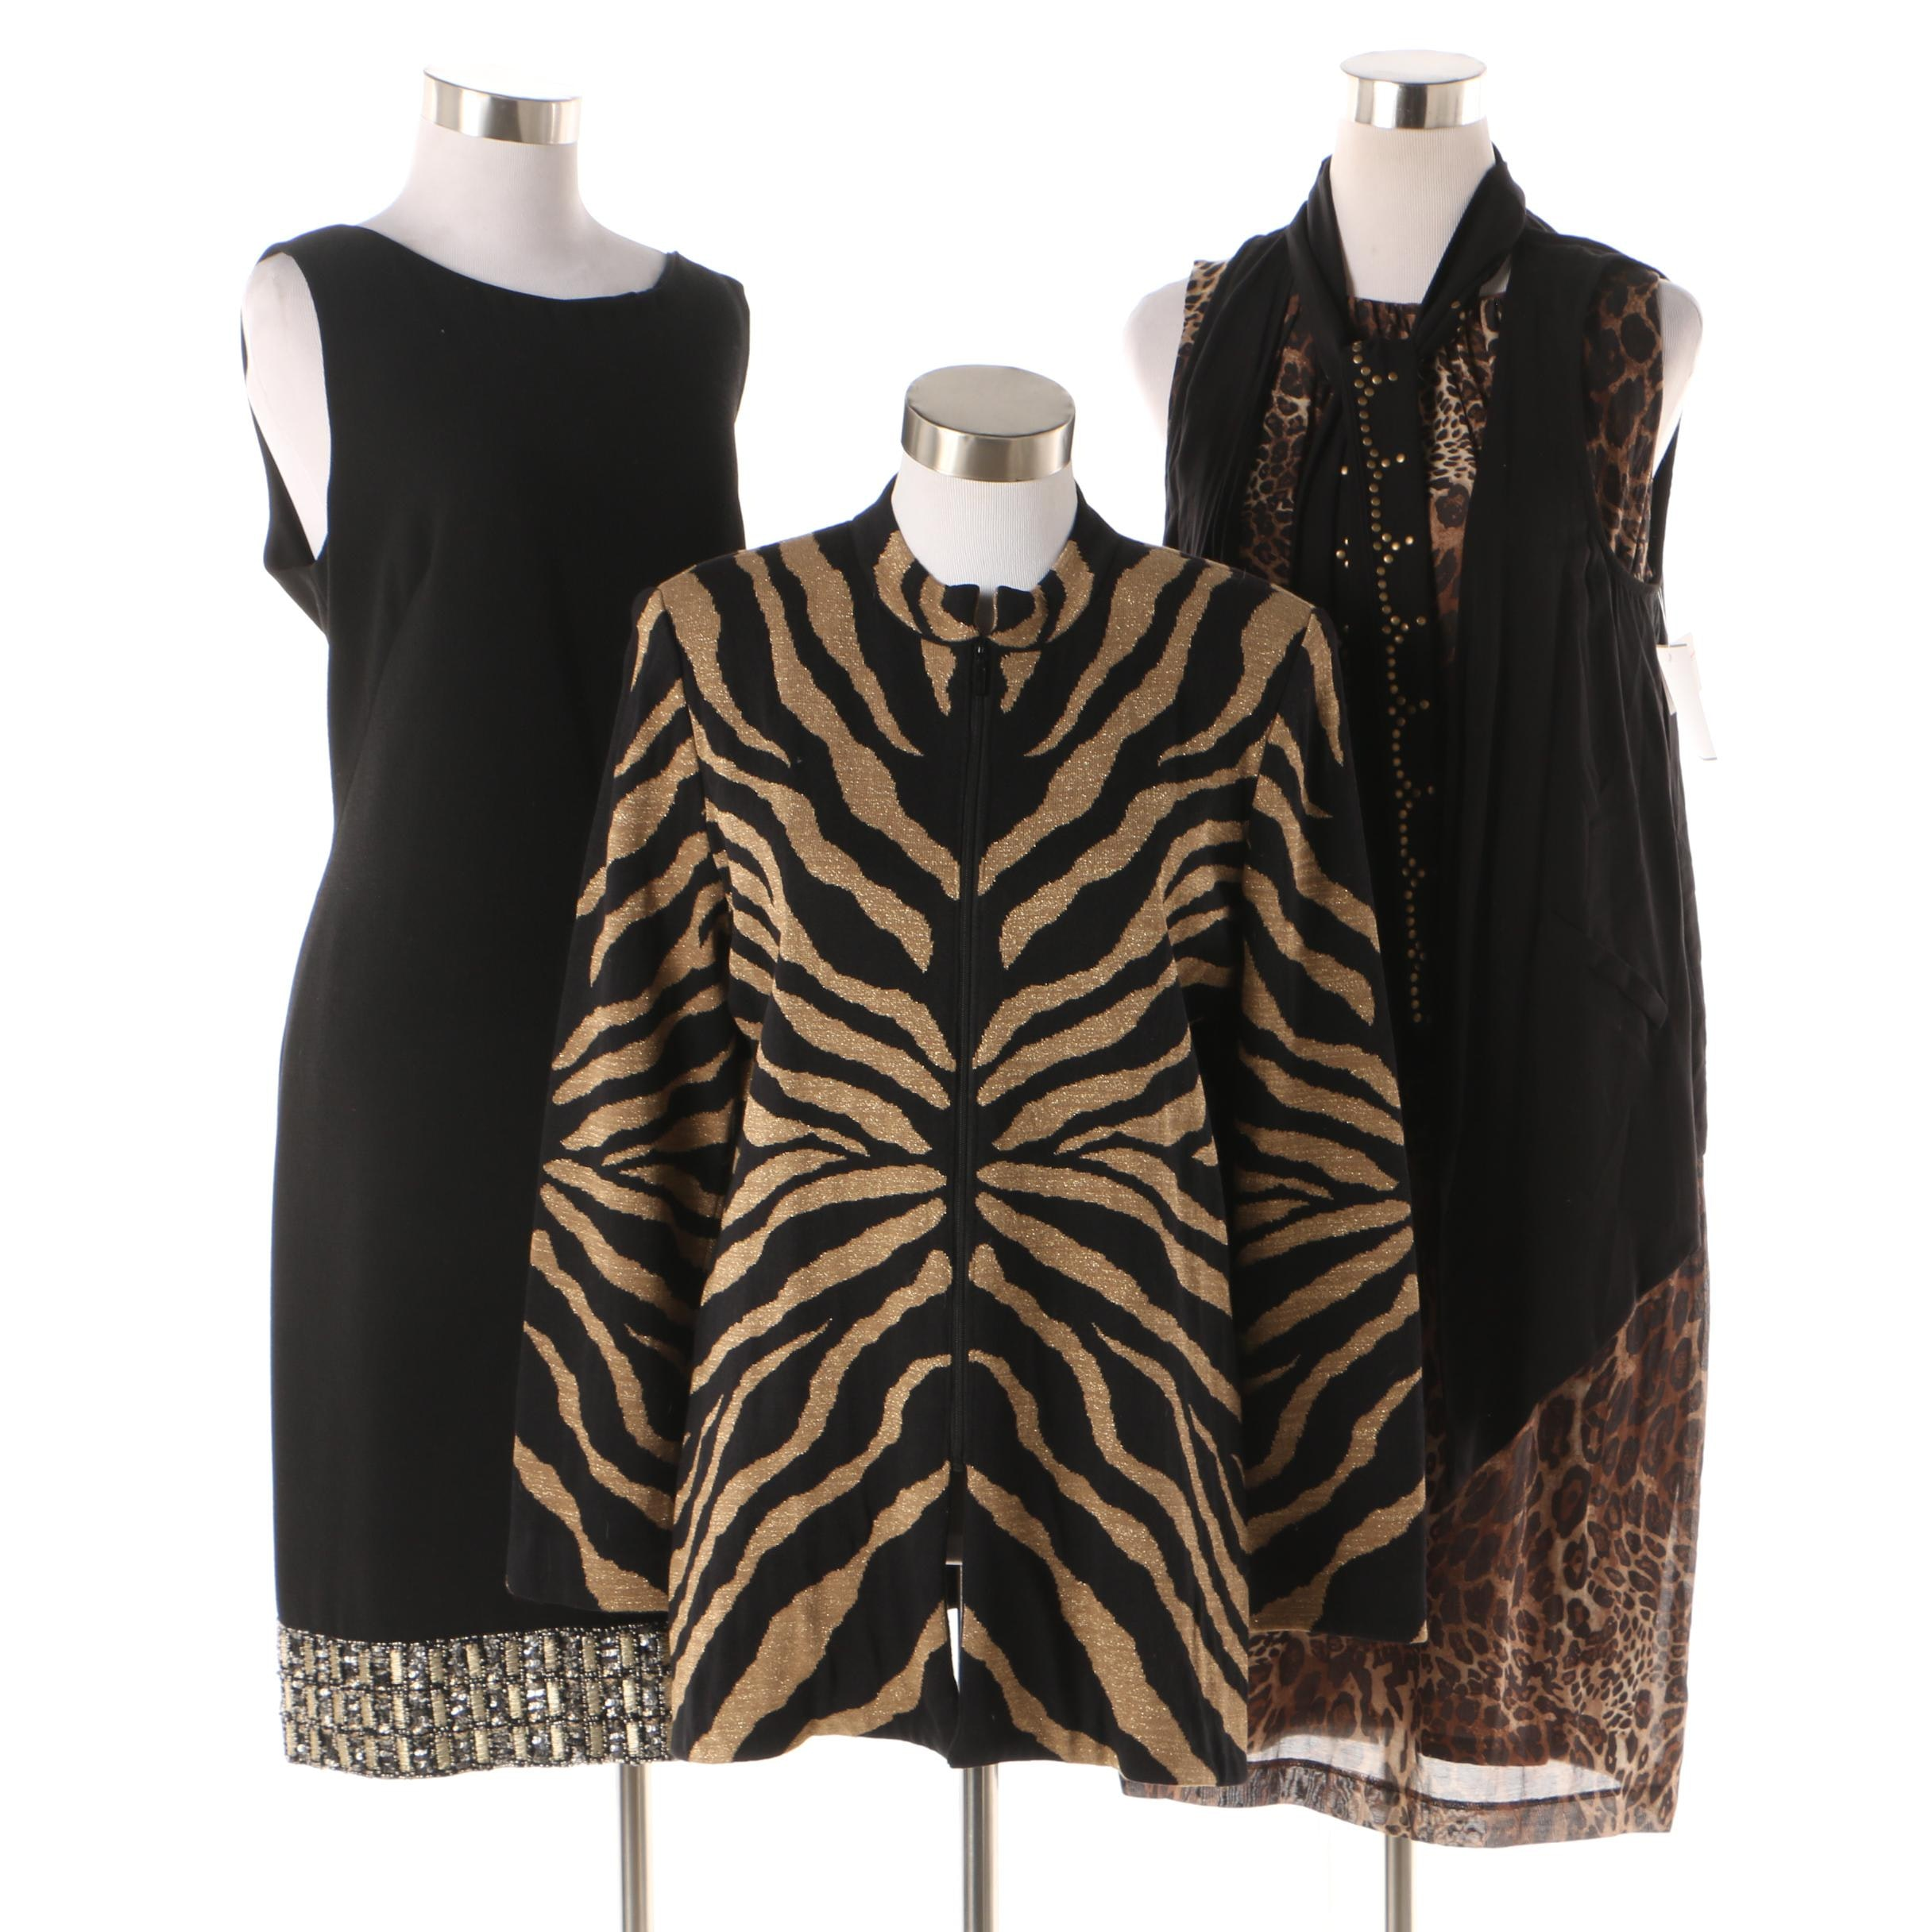 Animal Print and Embellished Dresses and Separates